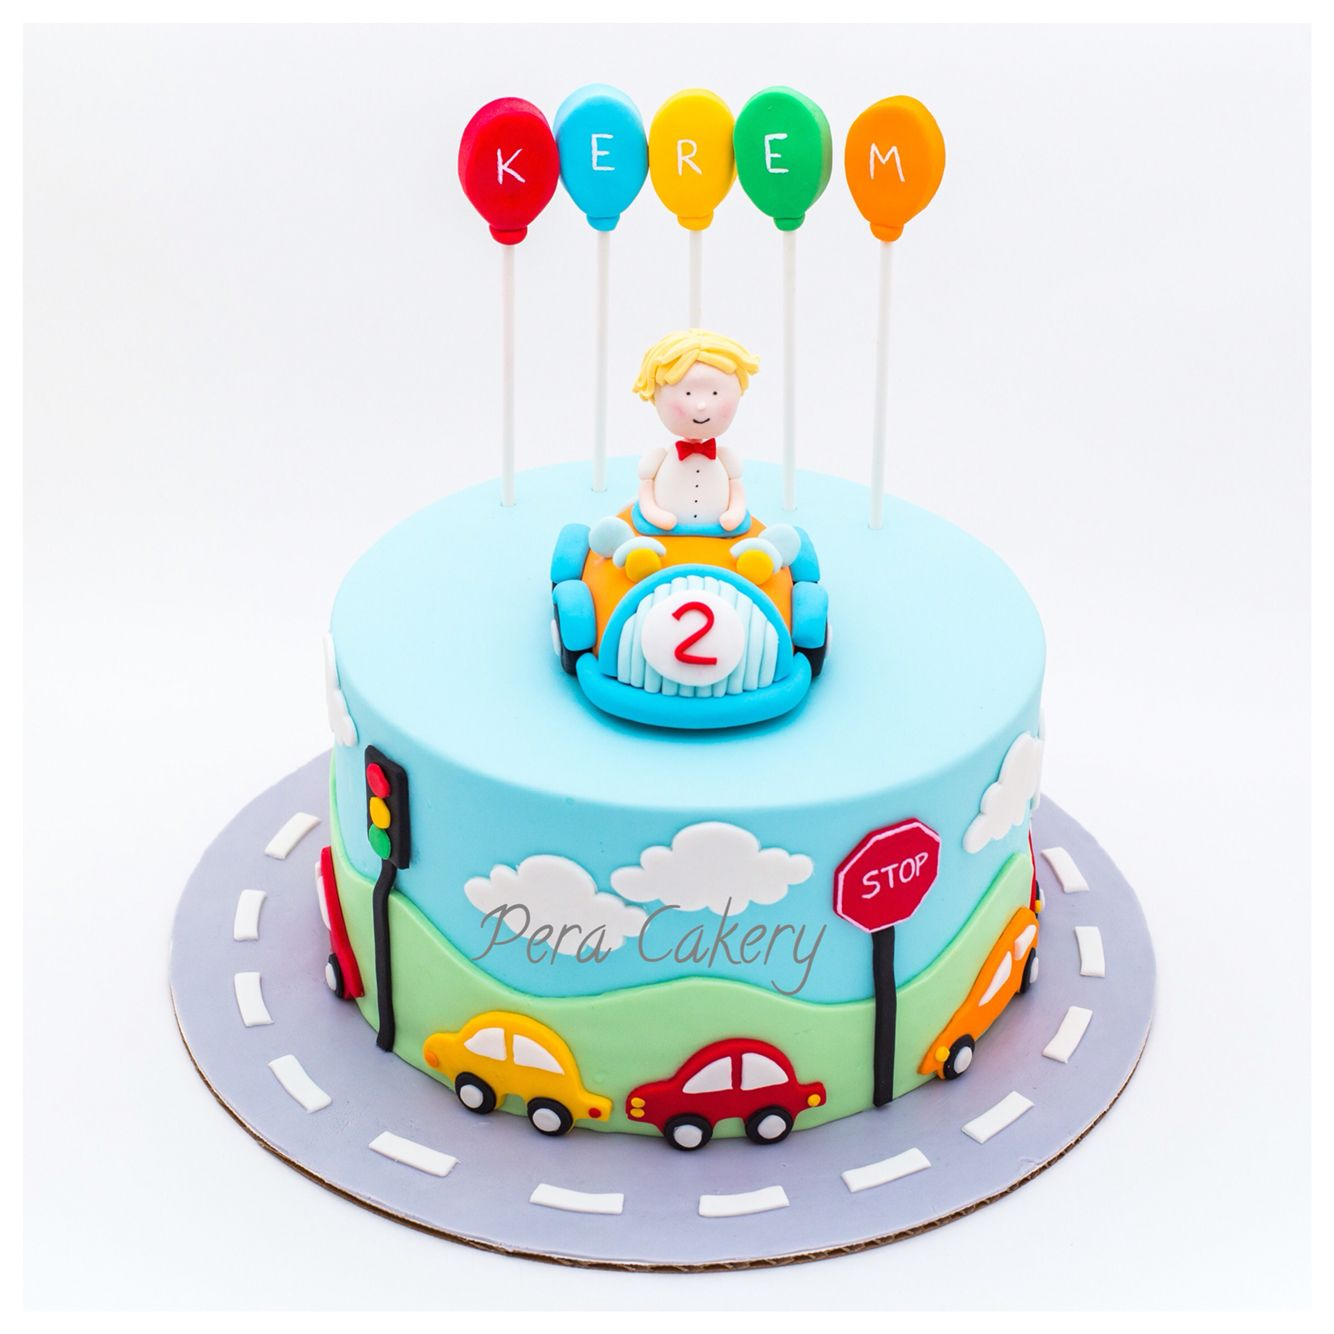 1334 In 34 Great Image Of Birthday Cake Boy